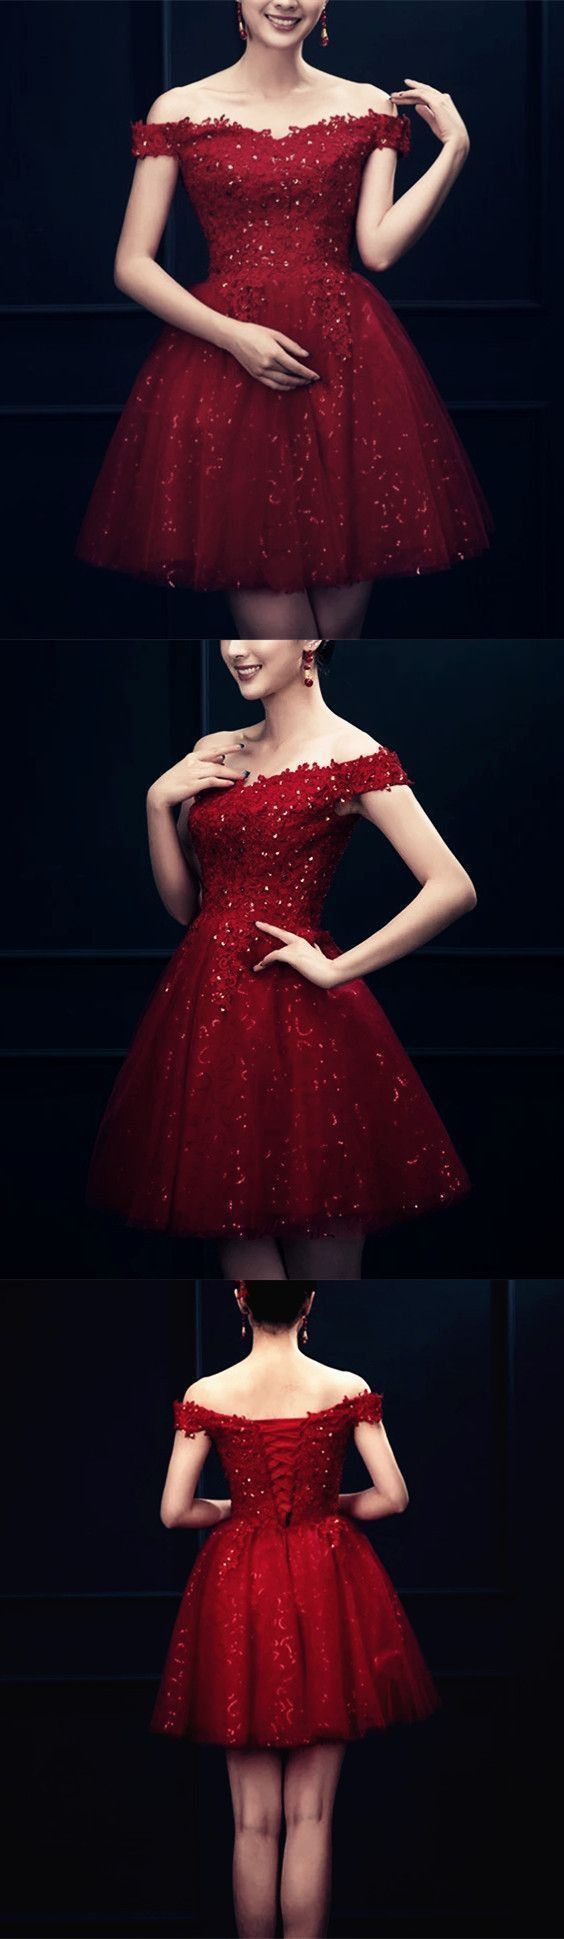 Elegant Lace Appliques Off The Shoulder Sequin Skirt Homecoming Dress 1574